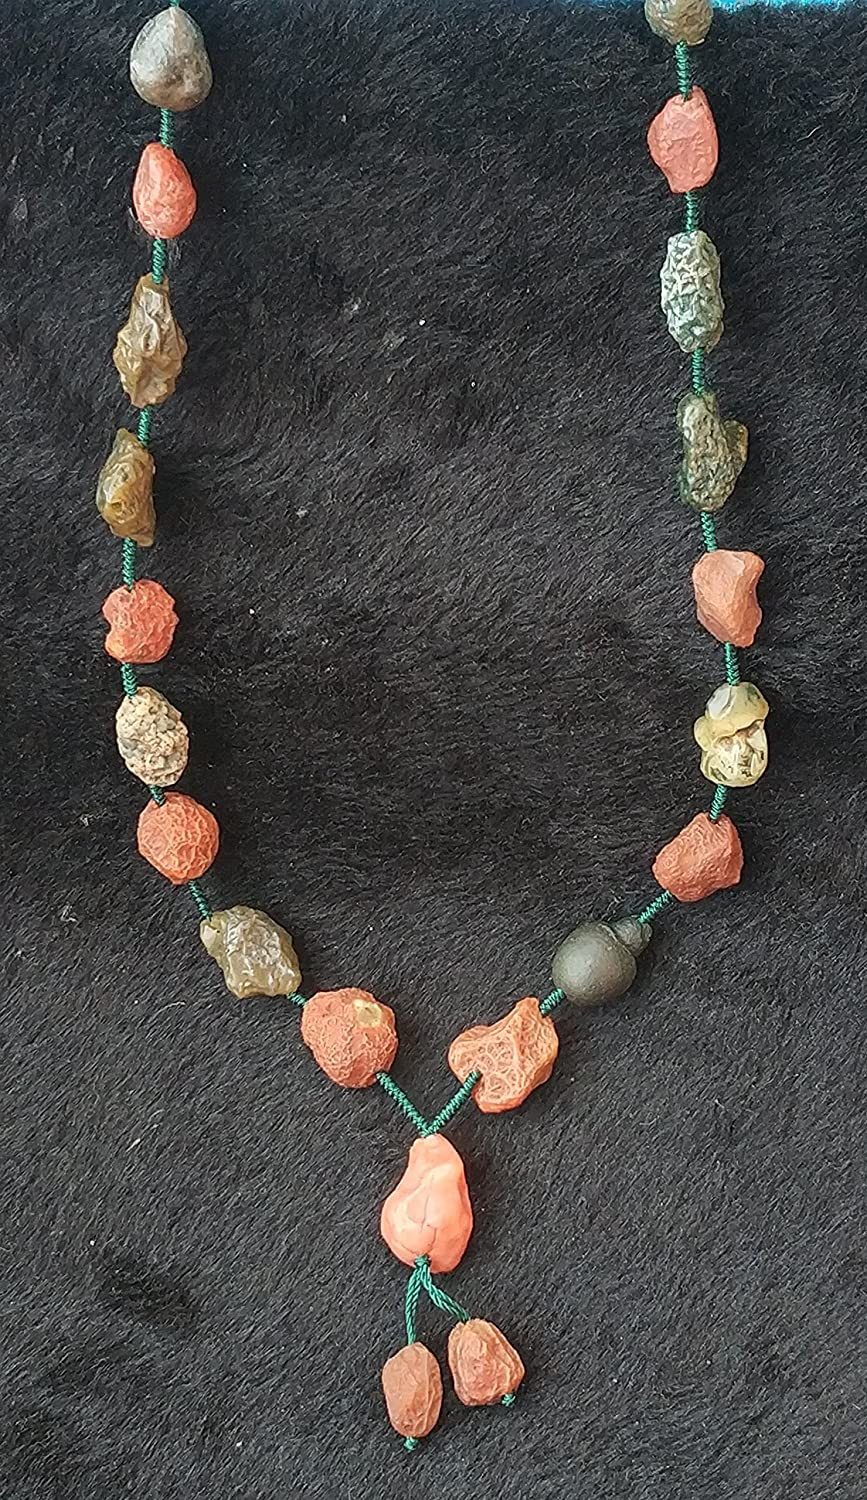 The Natural Agate Stone Necklaces,for womens and mens necklaces